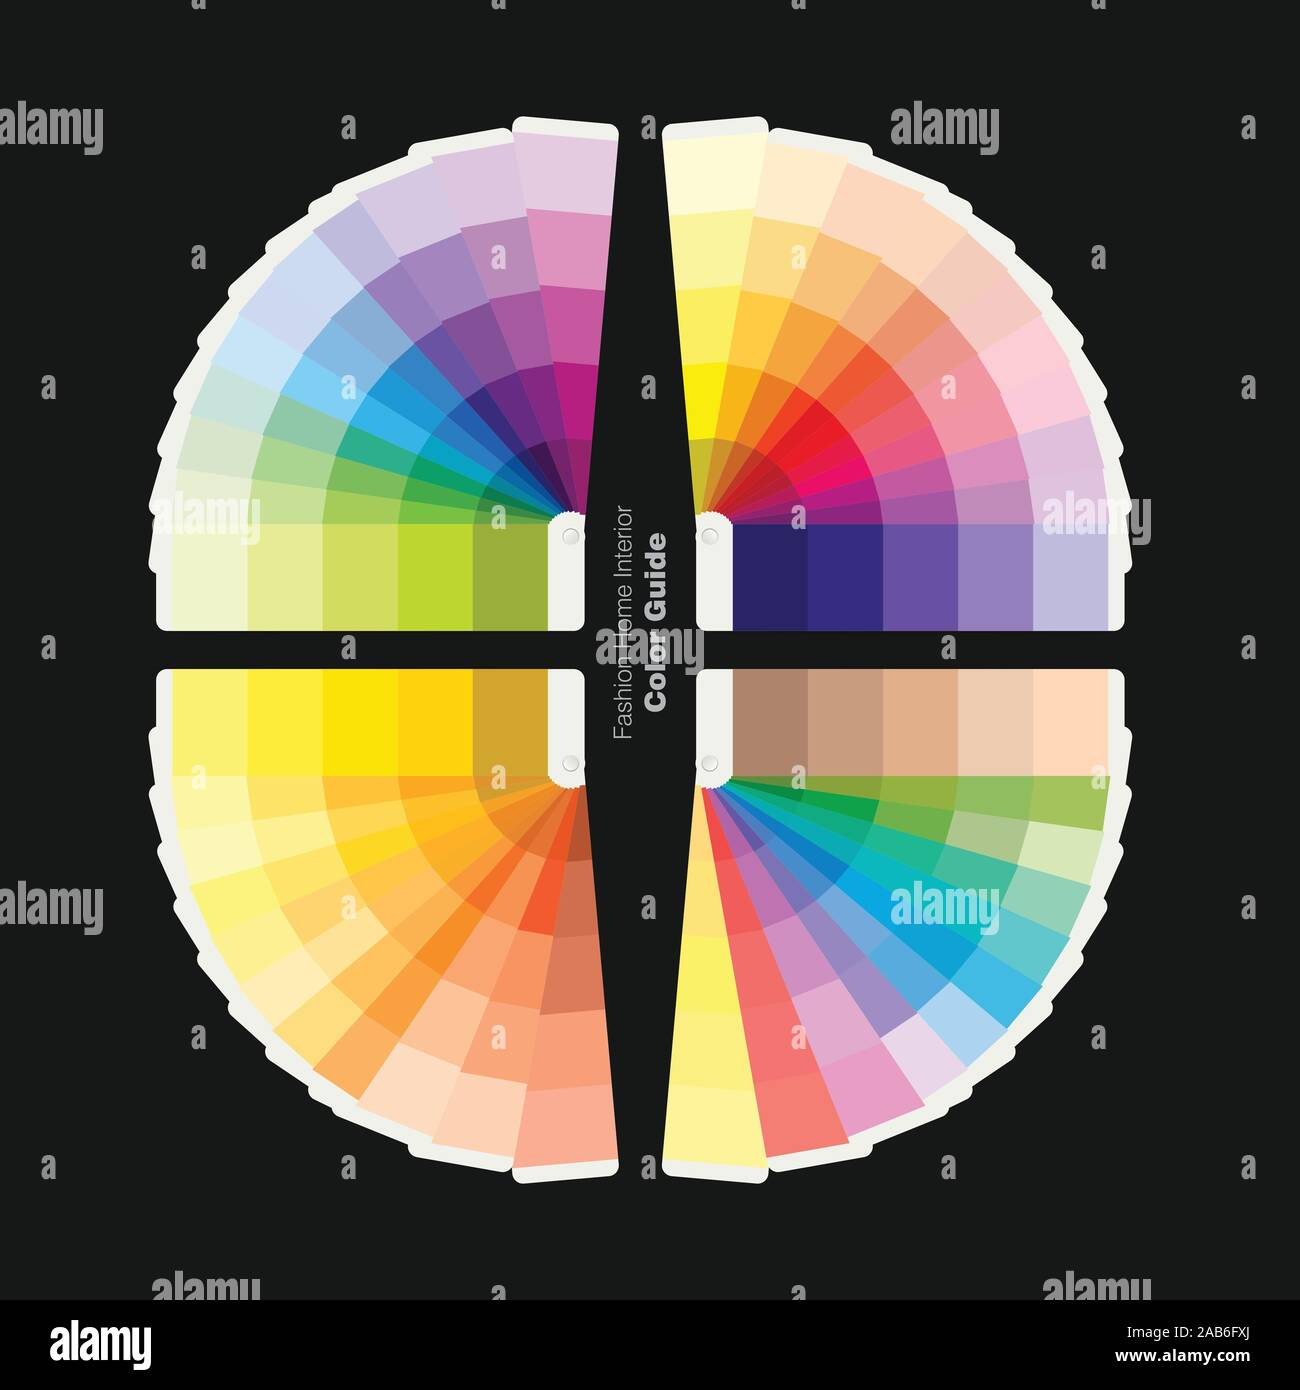 Illustration Of Color Palettes Guide For Fashion Home Interior Design Guide Book Vector Illustration Stock Vector Image Art Alamy